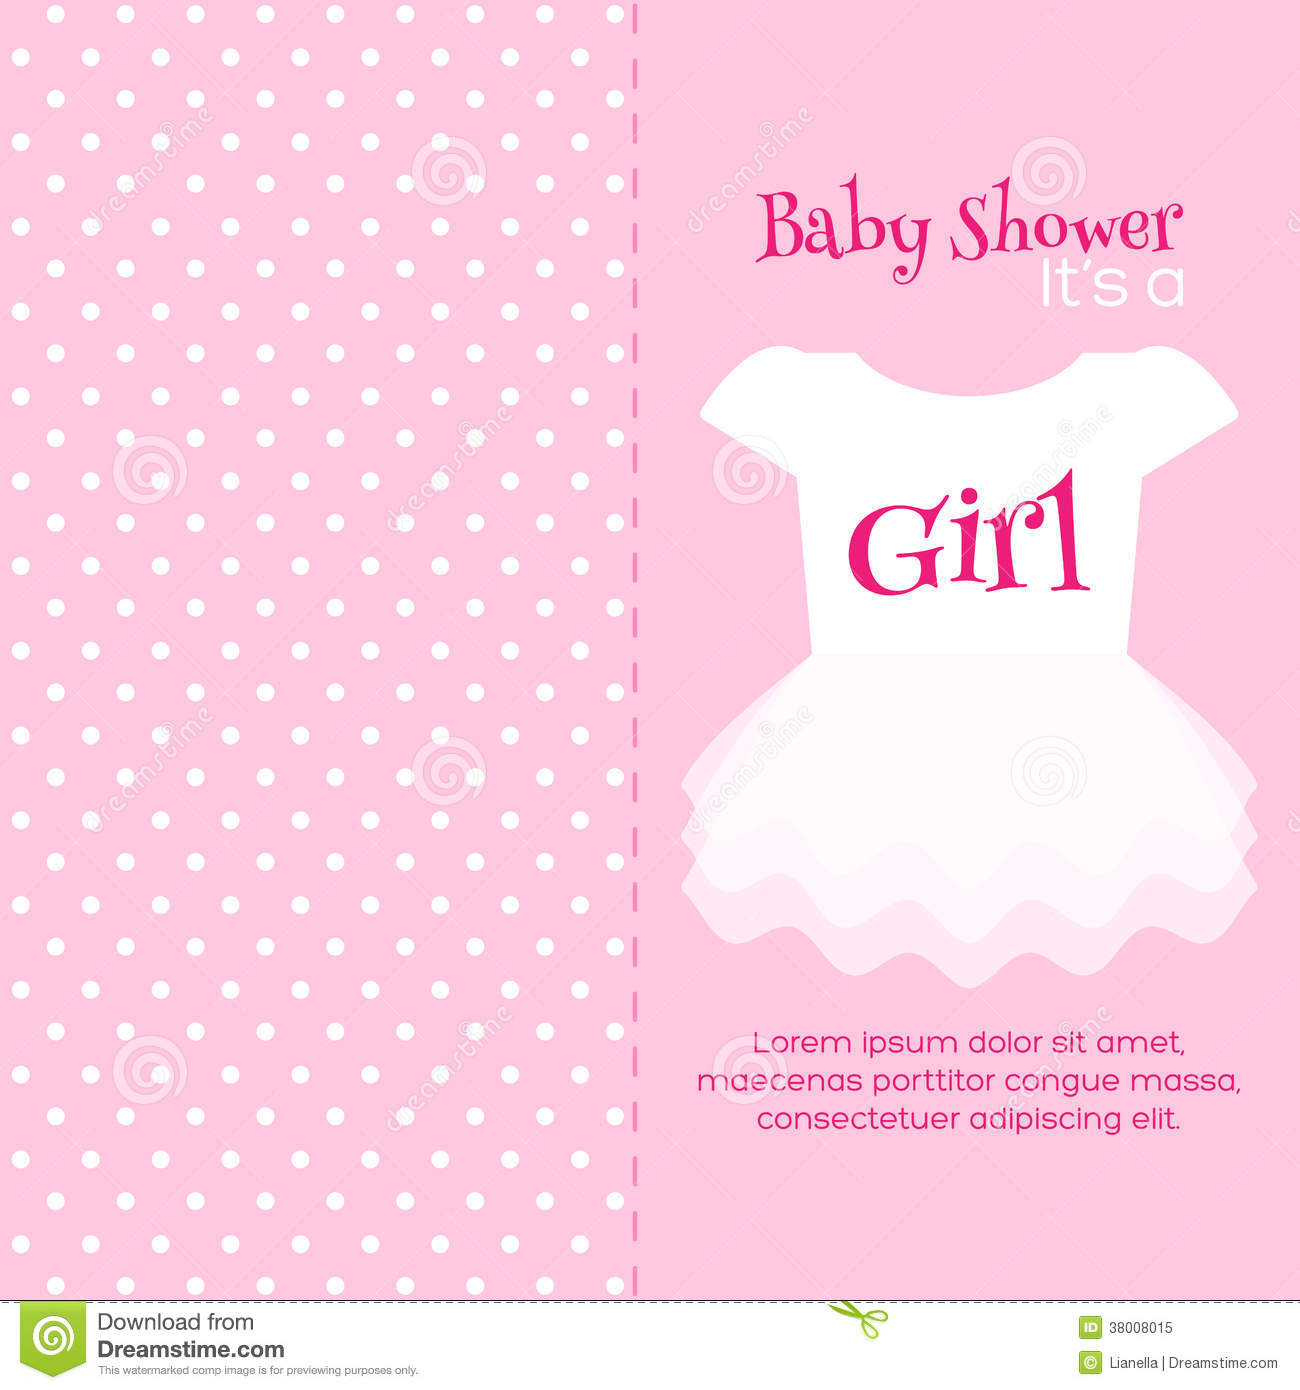 Baby Shower Invitation Template Royalty Free Stock Photo Image